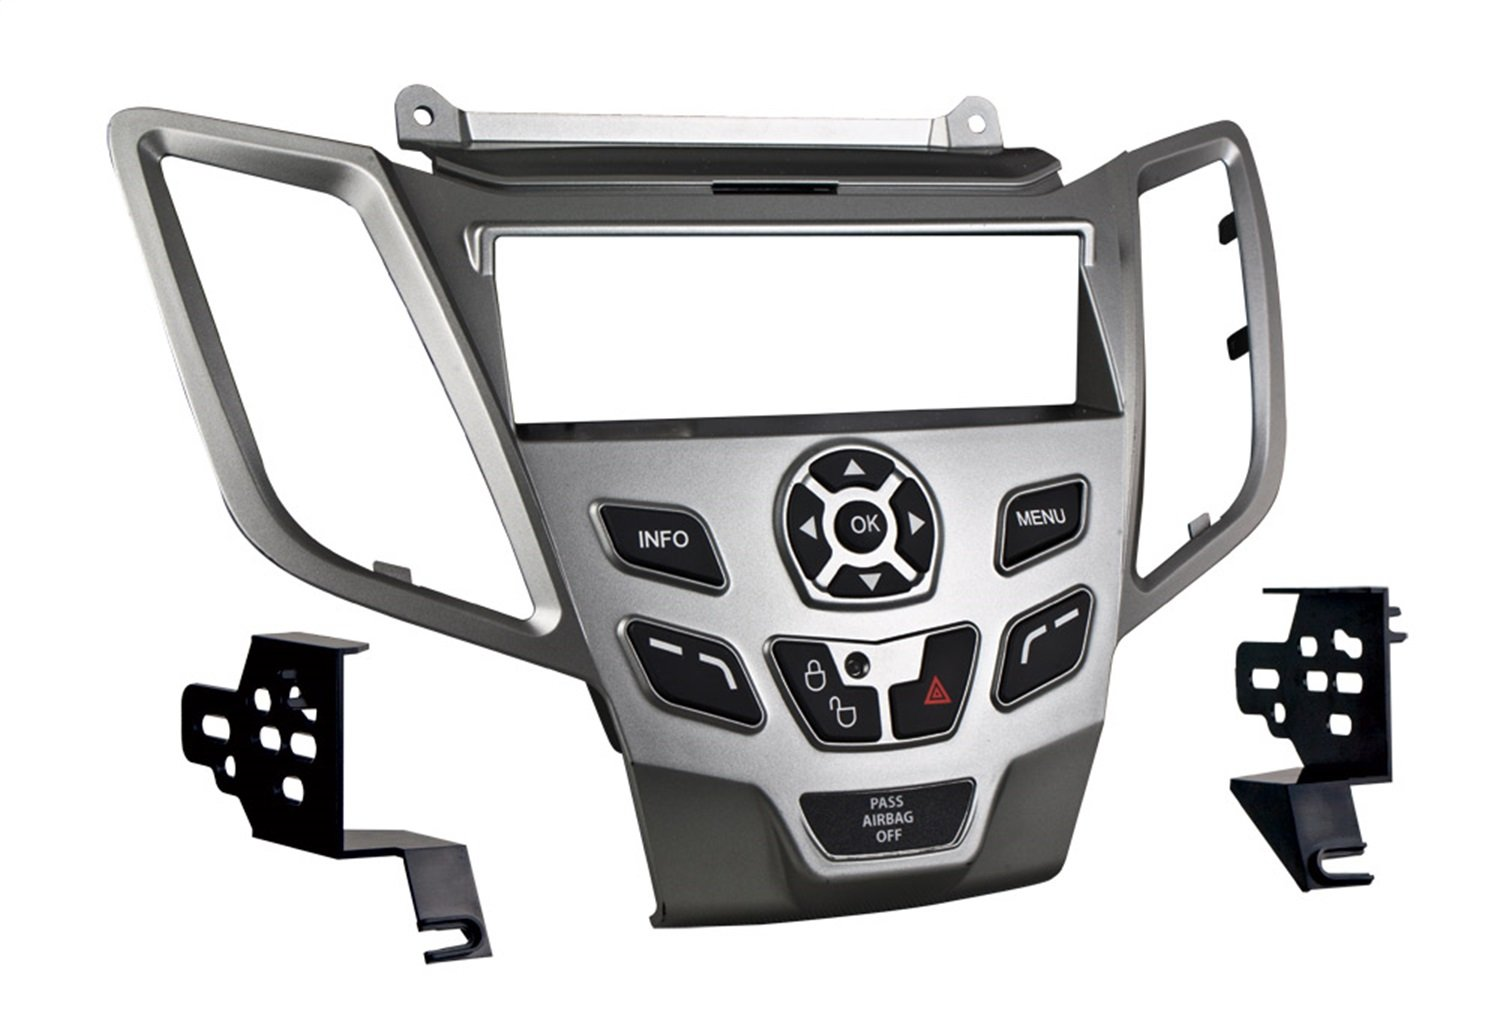 Metra 99-5825S Single DIN Dash Installation Kit for 2010-Up Ford Fiesta Vehicles (Silver)